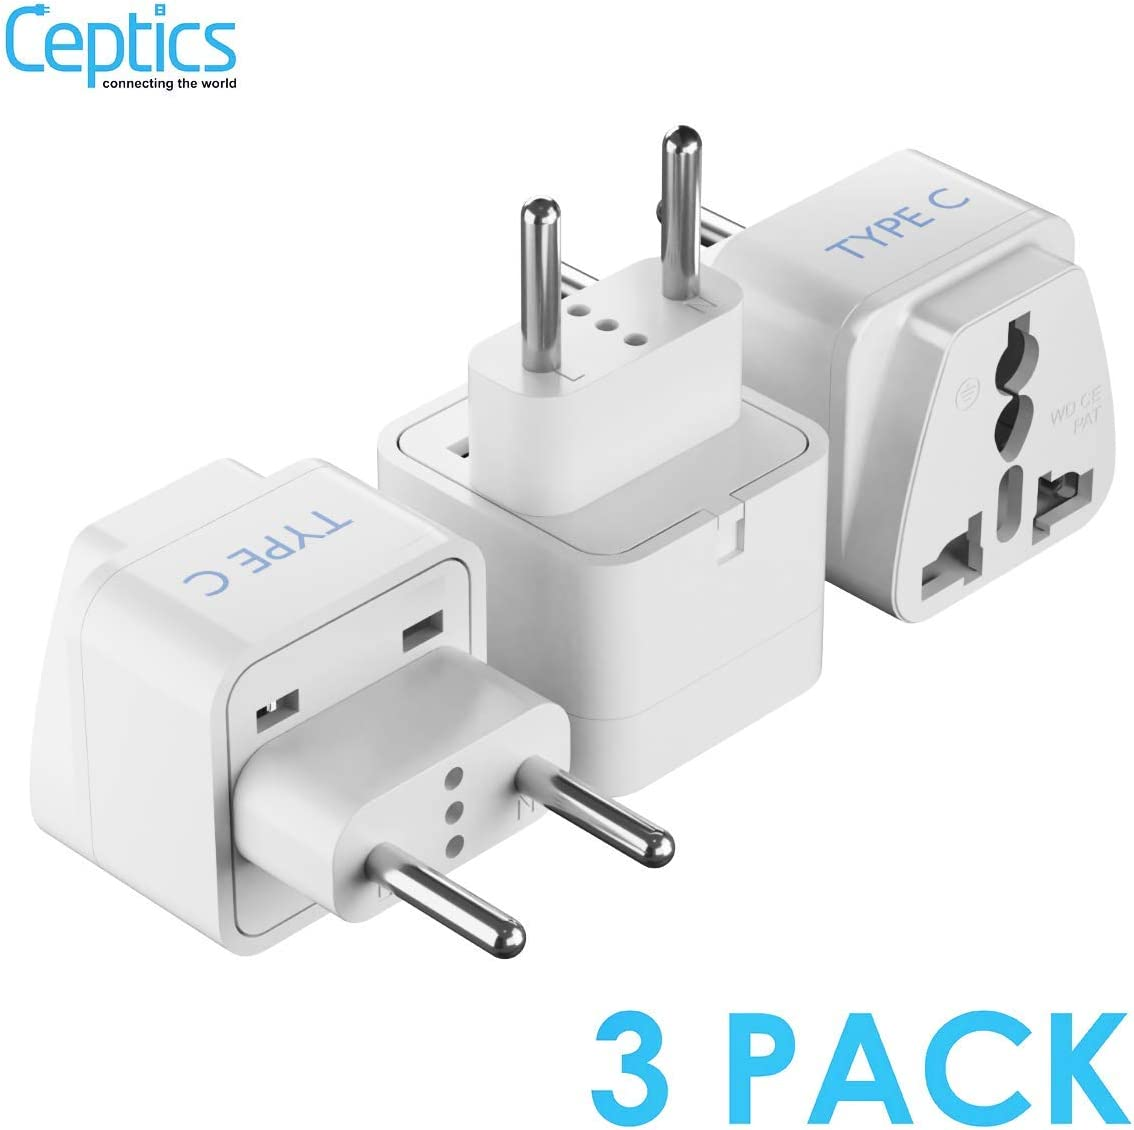 USA Input European Egypt Travel Adapter Plug by Ceptics with Dual USB Cameras and More Light Weight Europe Chargers Perfect for Cell Phones Type C 2 Pack